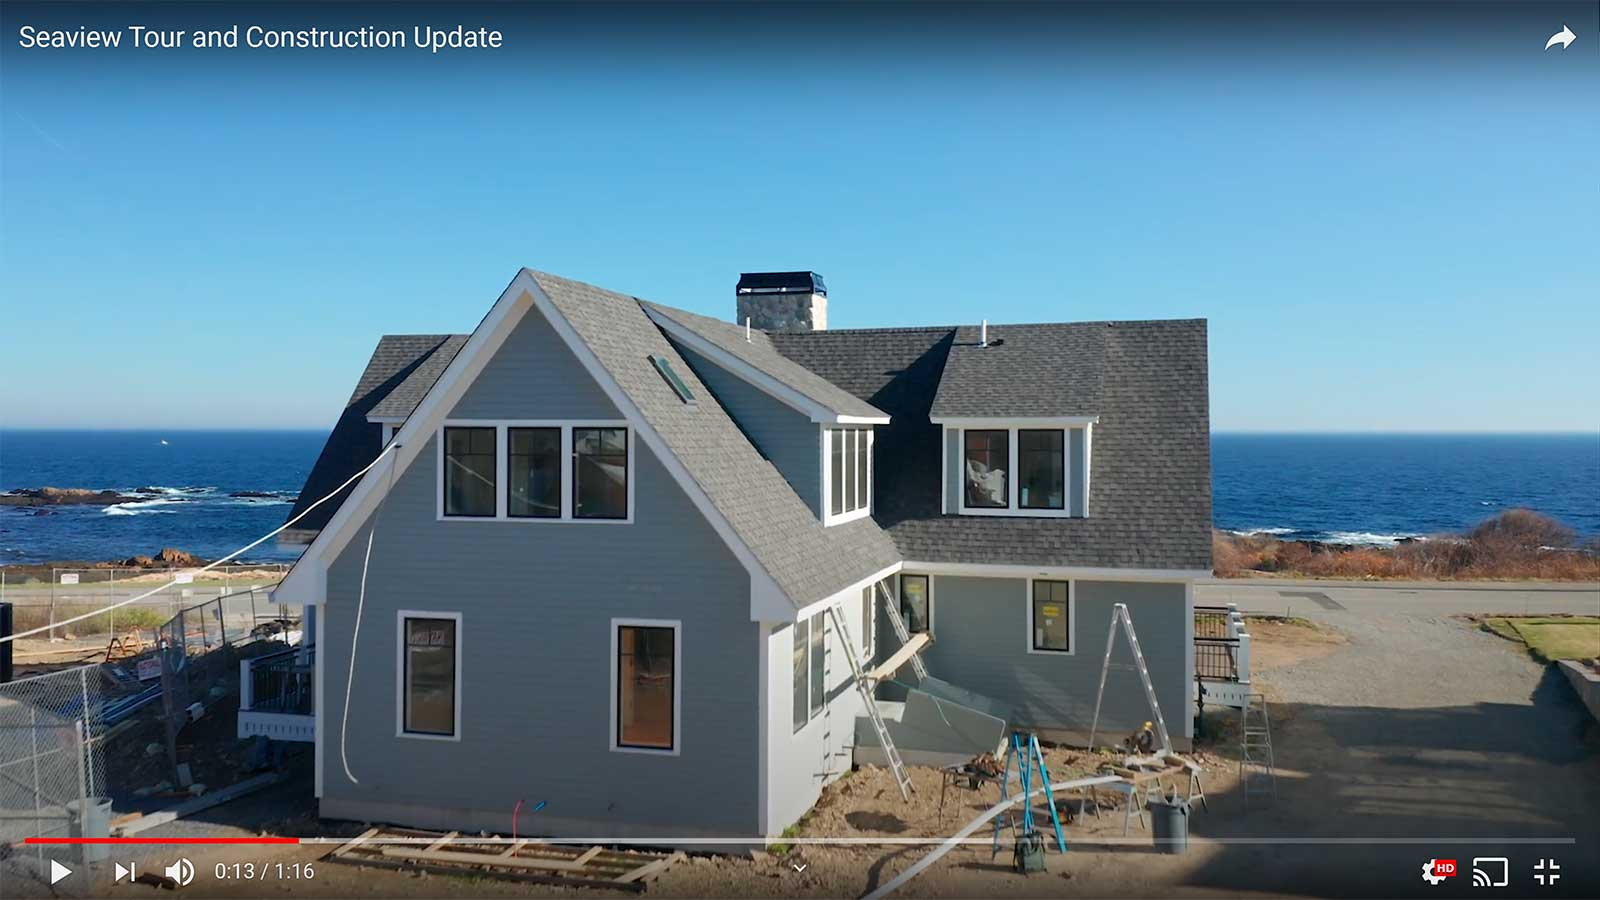 Seaview Tour and Construction Update